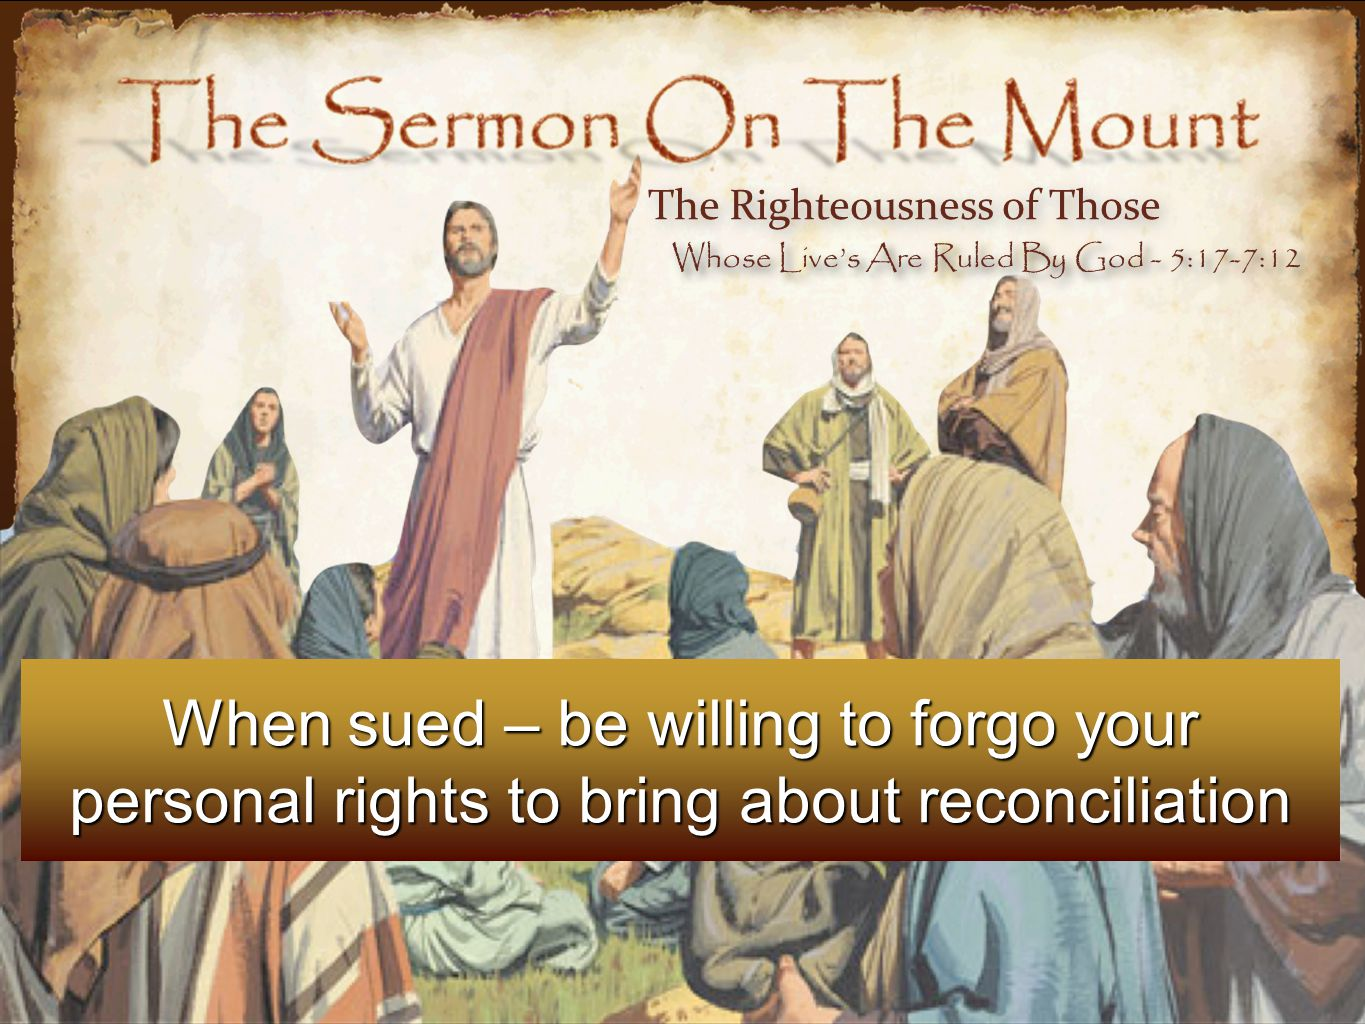 When sued – be willing to forgo your personal rights to bring about reconciliation The Righteousness of Those Whose Live's Are Ruled By God - 5:17-7:12